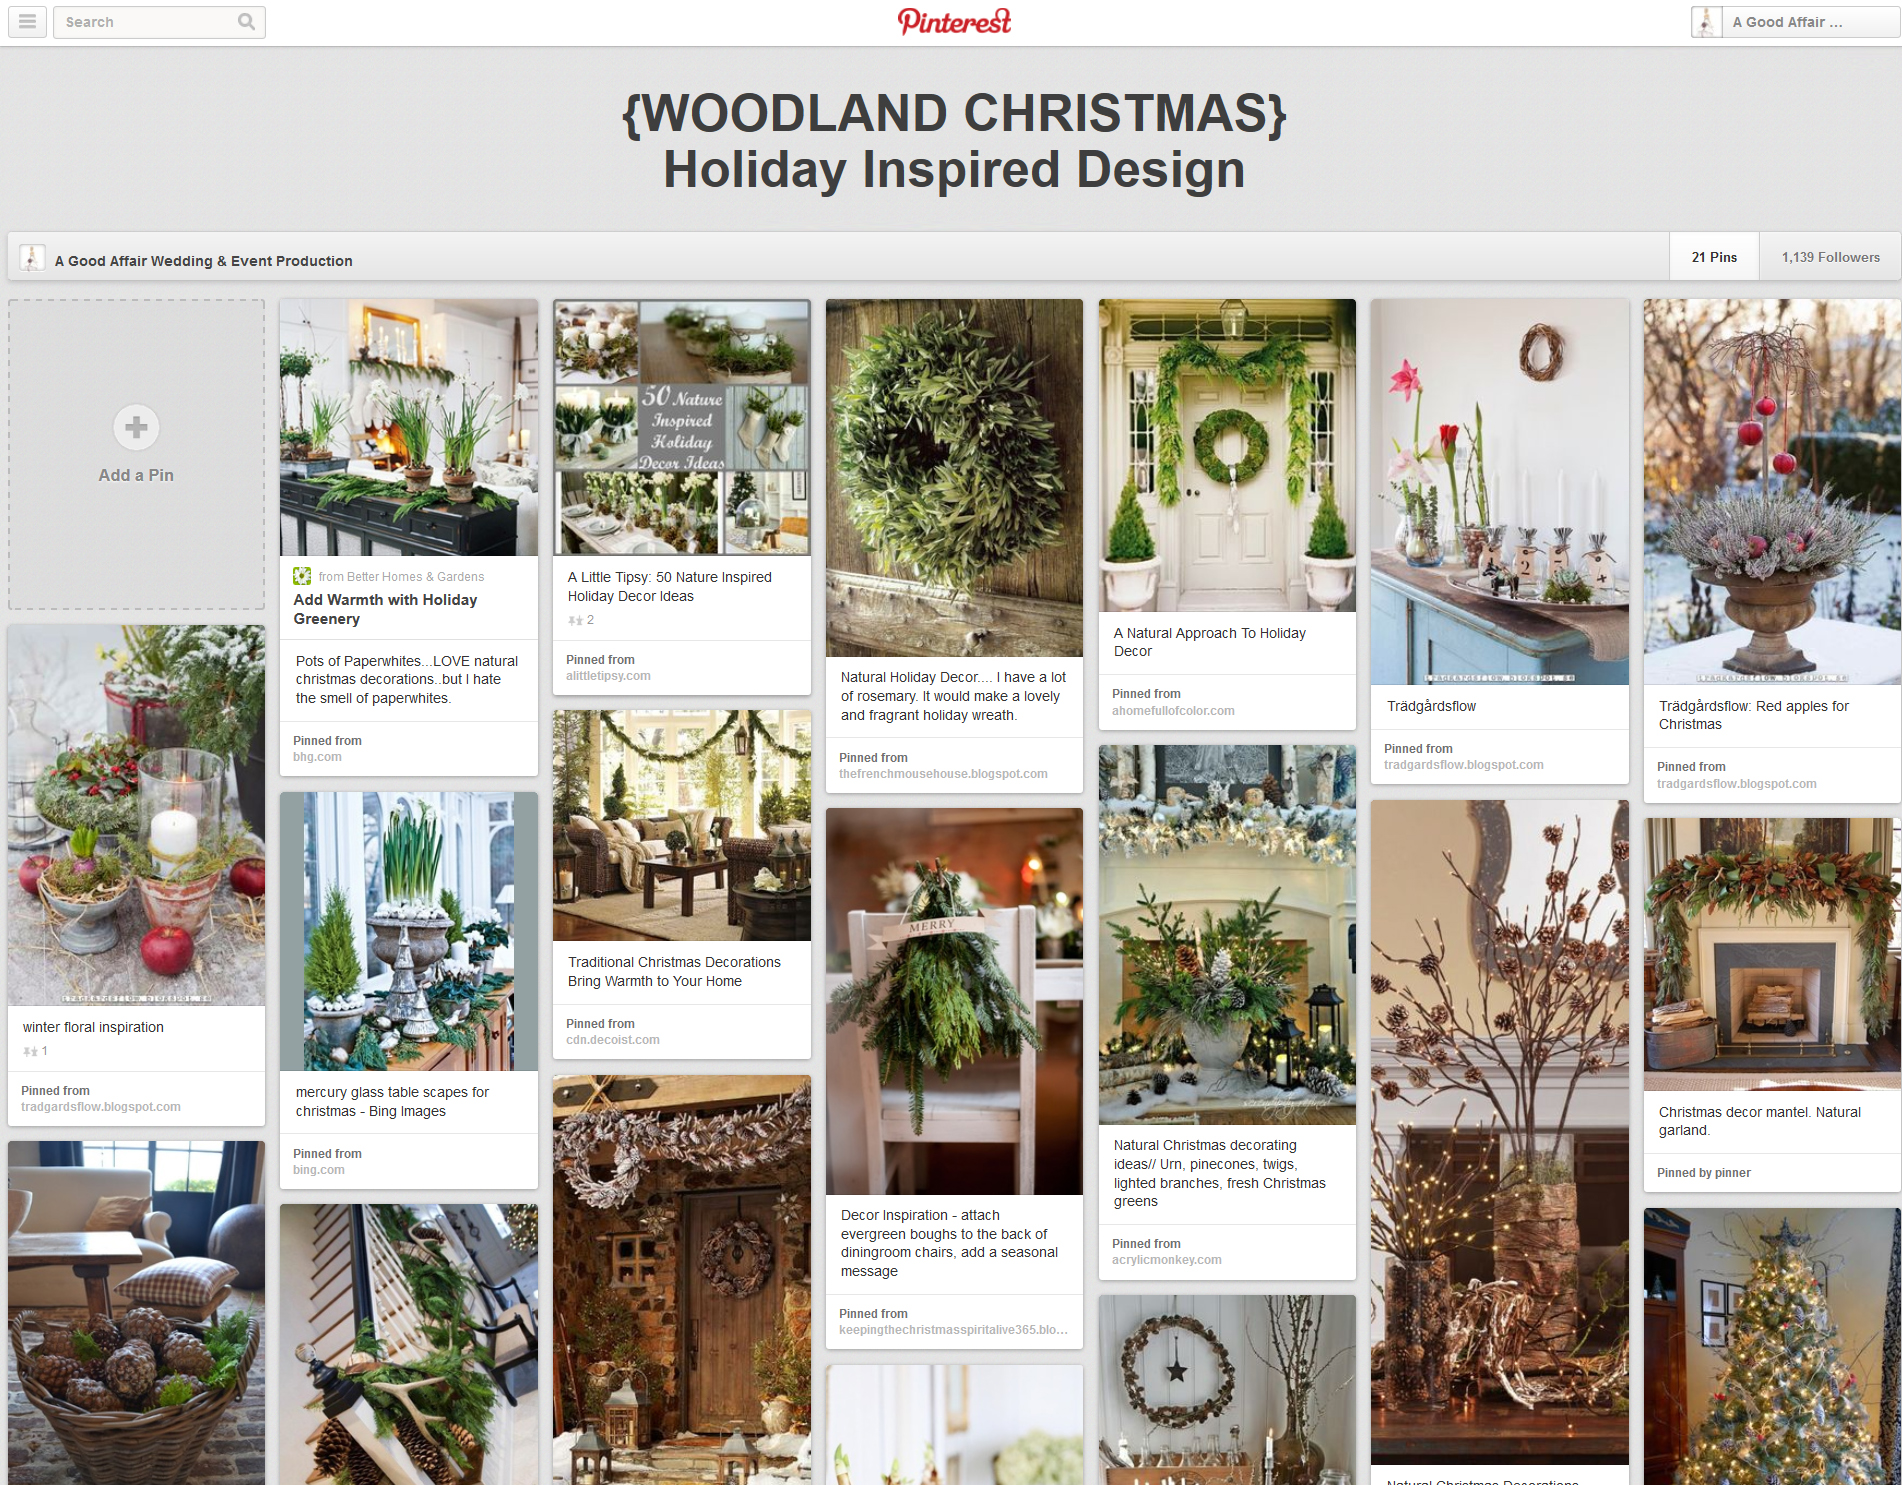 holidayinspo_woodland